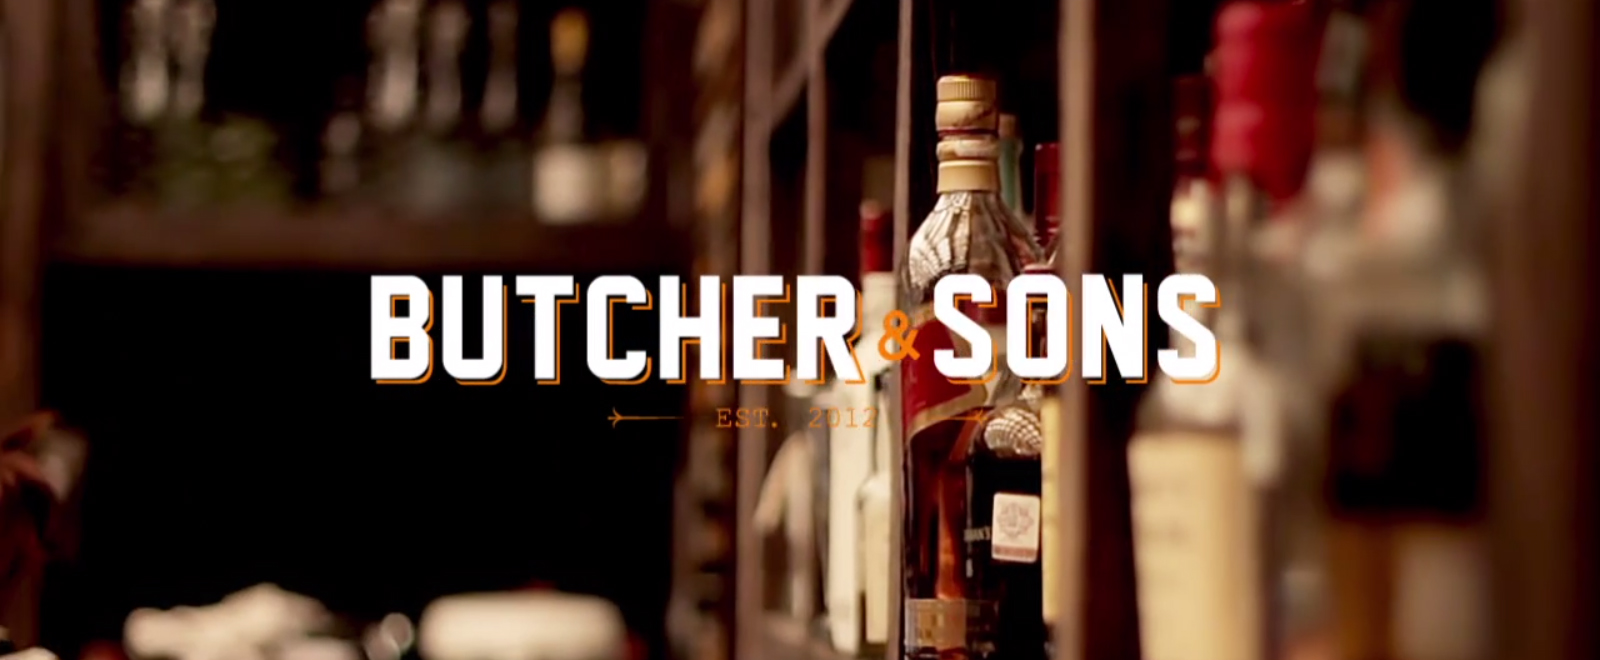 Butcher & Sons Polanco